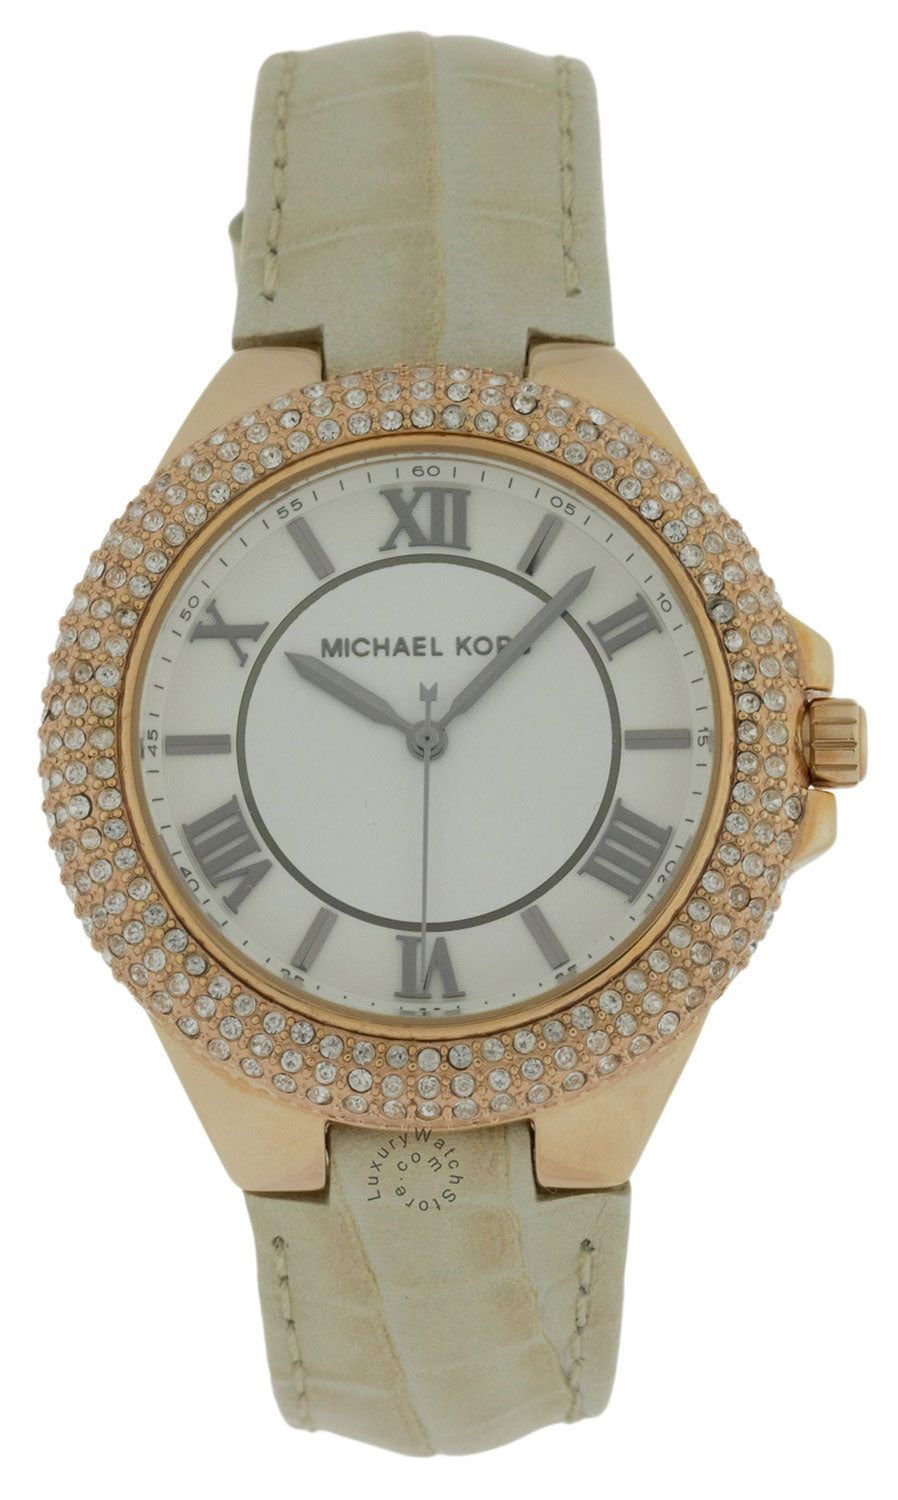 Michael Kors MK2330 Slim Camille Rose Gold Women's Leather Watch